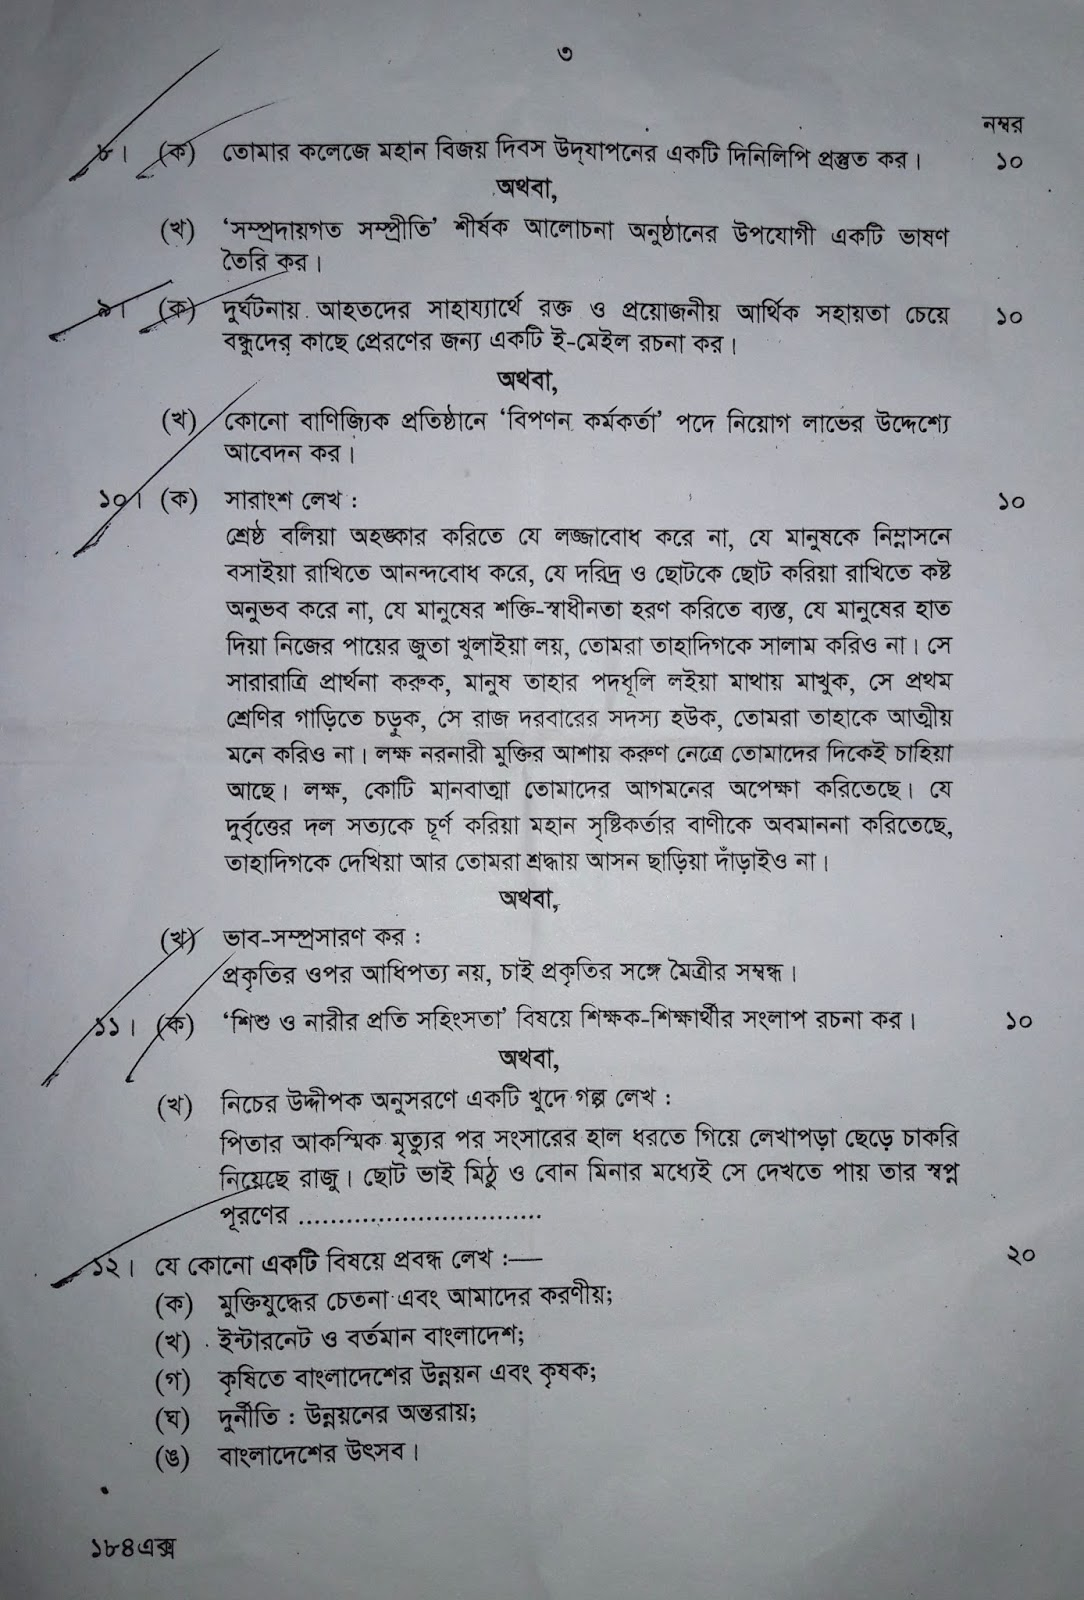 HSC Bangla 2nd Paper Suggestion & Question 2020 - 100% Common